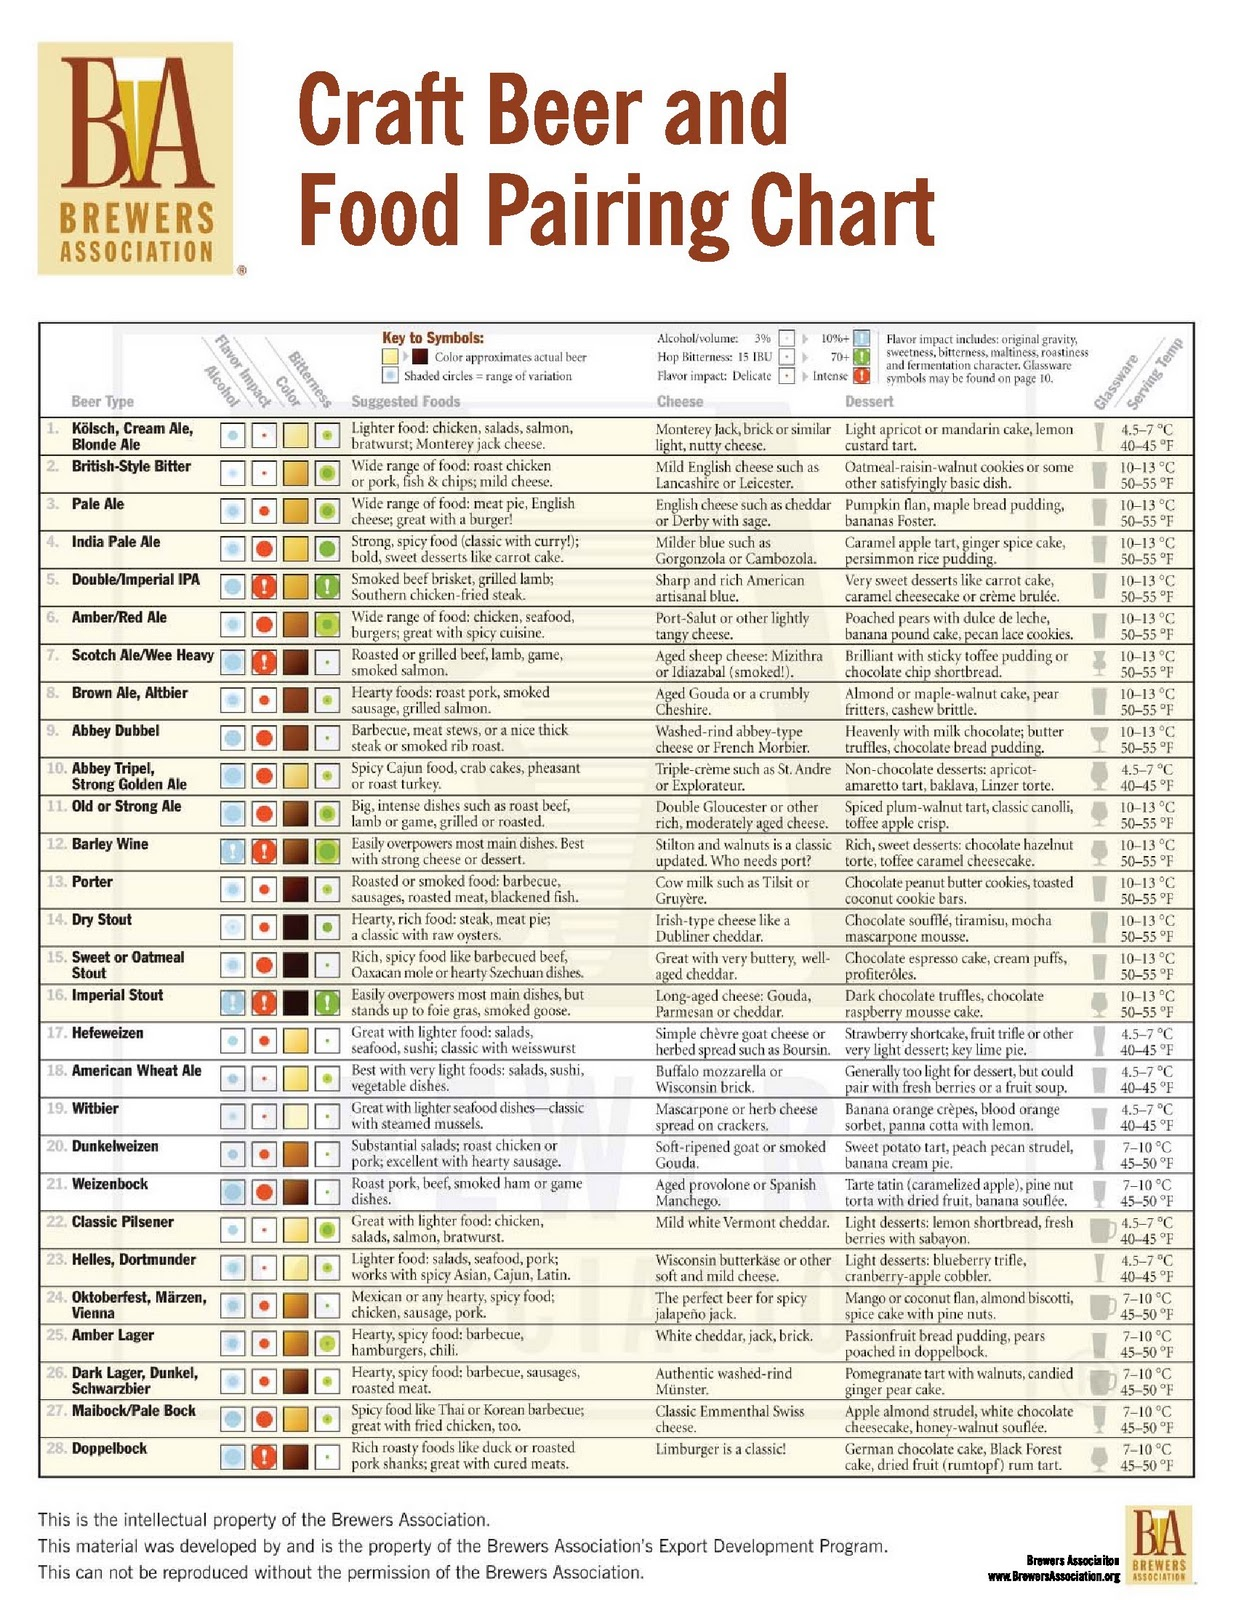 Mashed potato sunglasses craft beer and food pairing chart for Craft beer and food